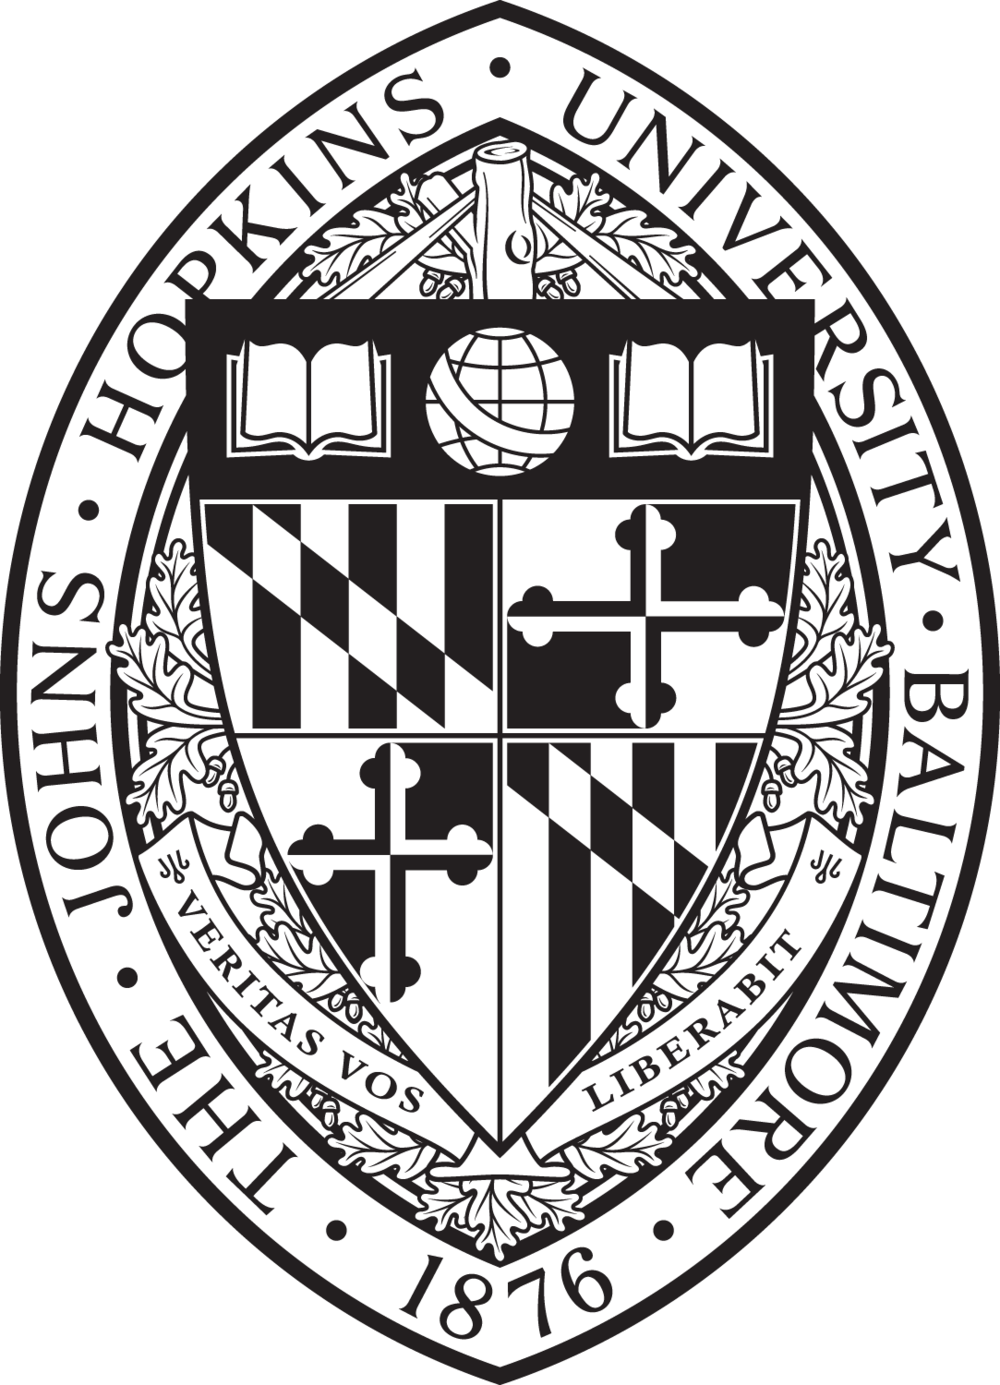 jhu-academic_seal-bw.png